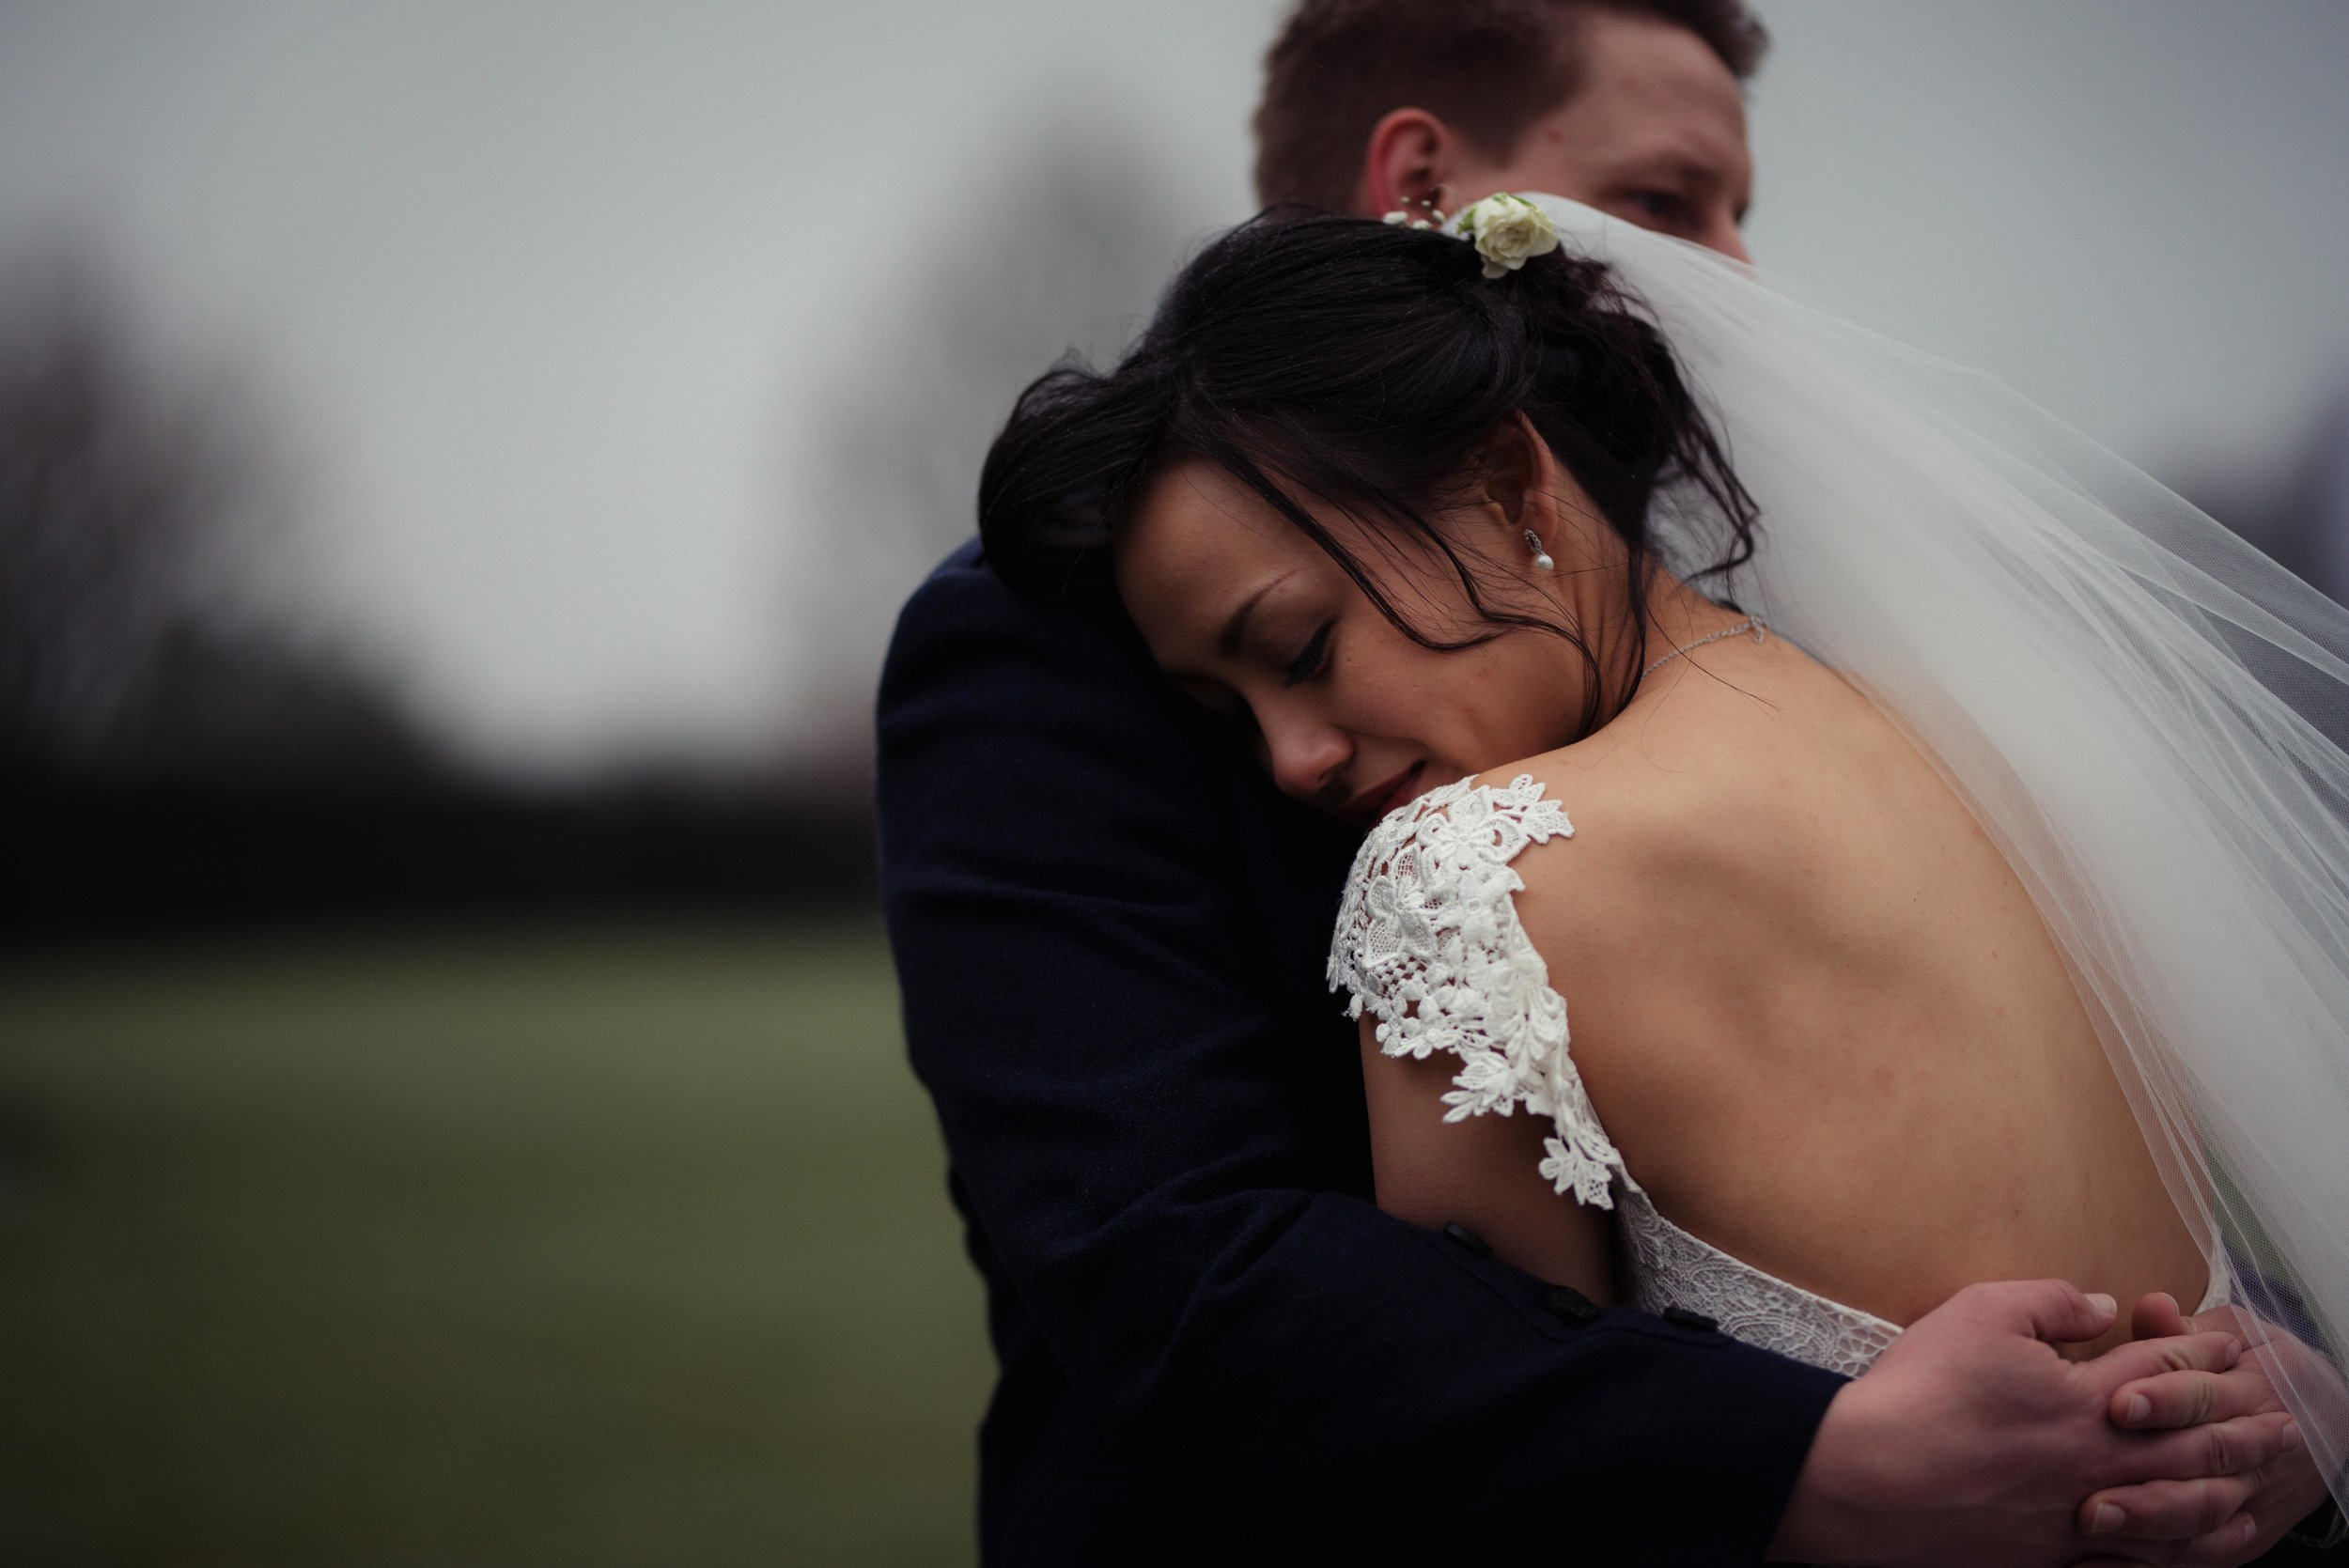 The groom pulls the bride close in to her to give her a hug during her wedding photography